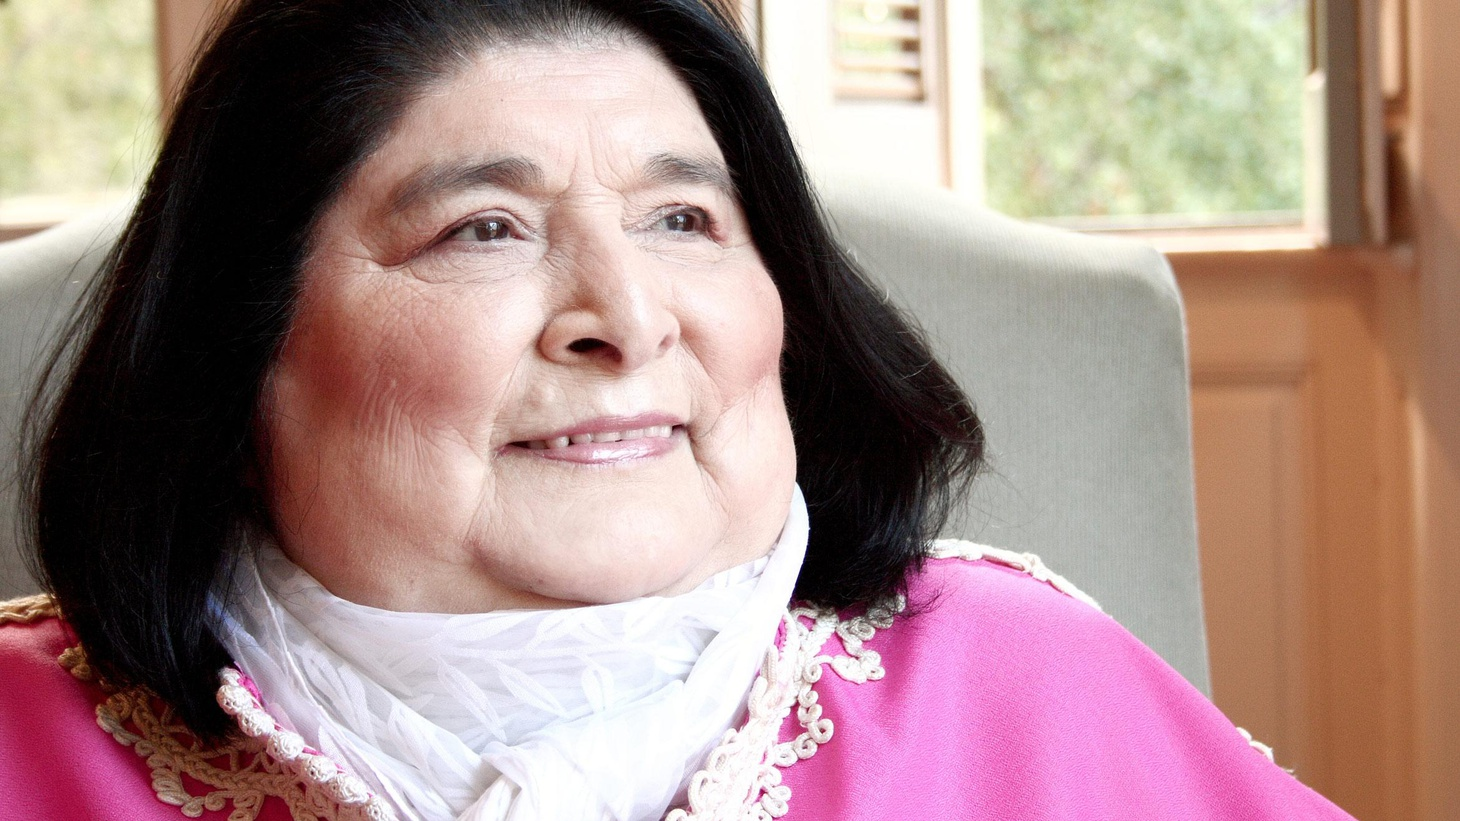 The late Argentine singer Mercedes Sosa was best known